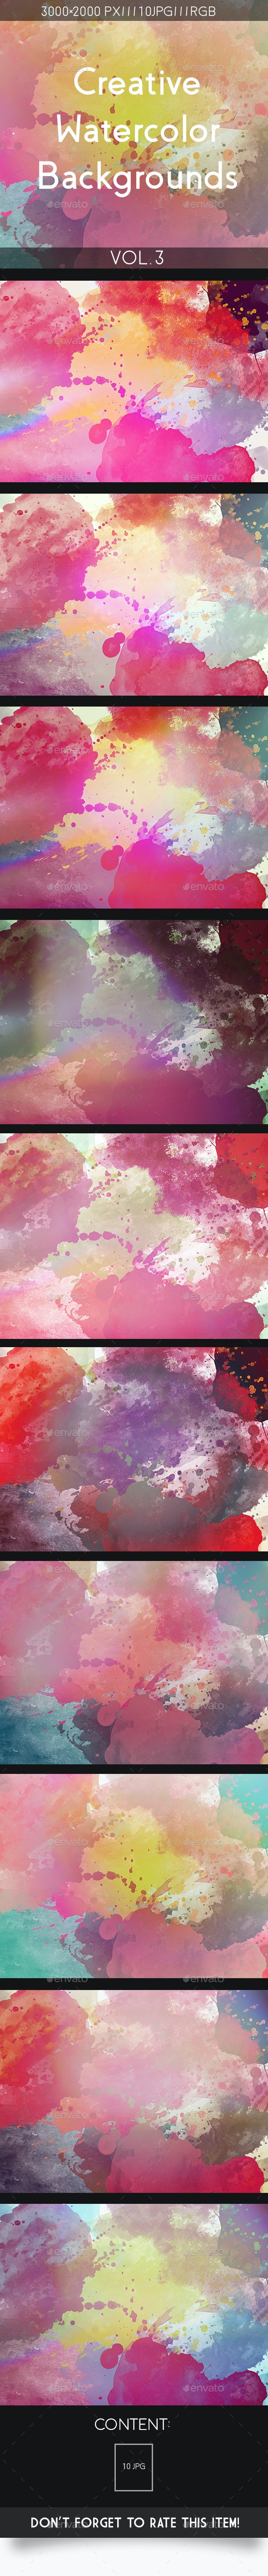 Creative Watercolor Backgrounds Vol.3 - Abstract Backgrounds